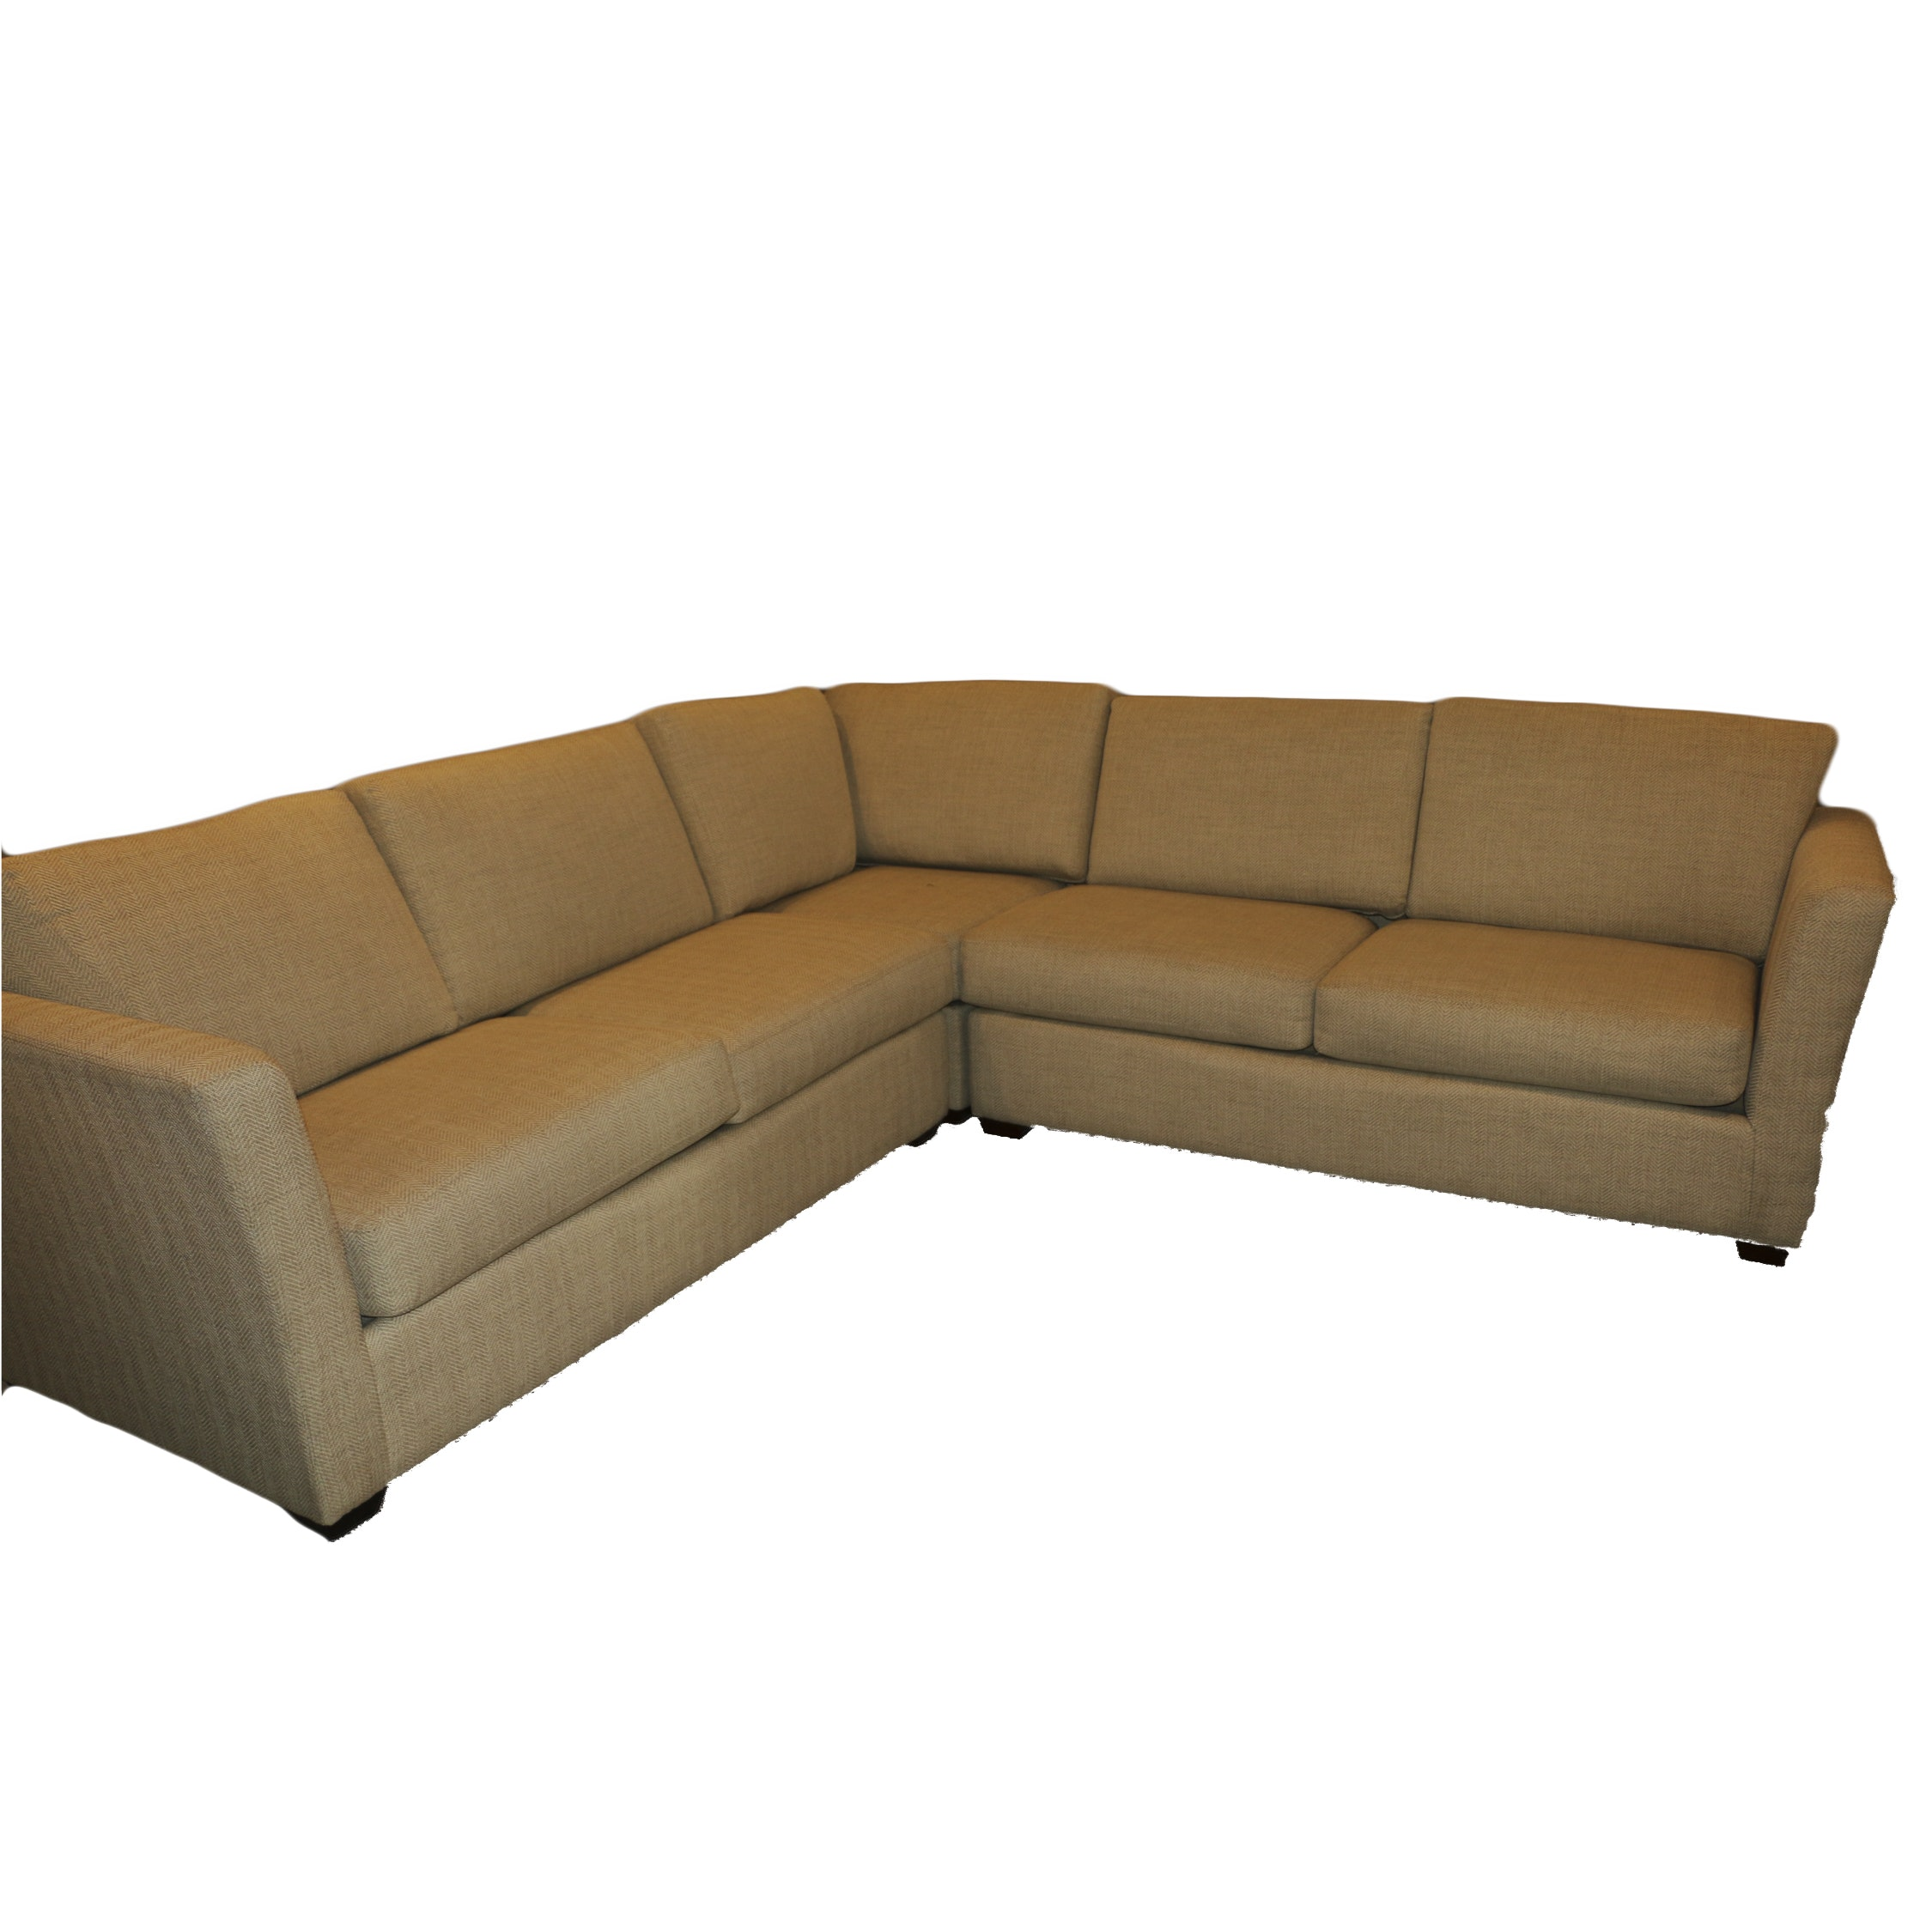 Upholstered Sectional Sofa